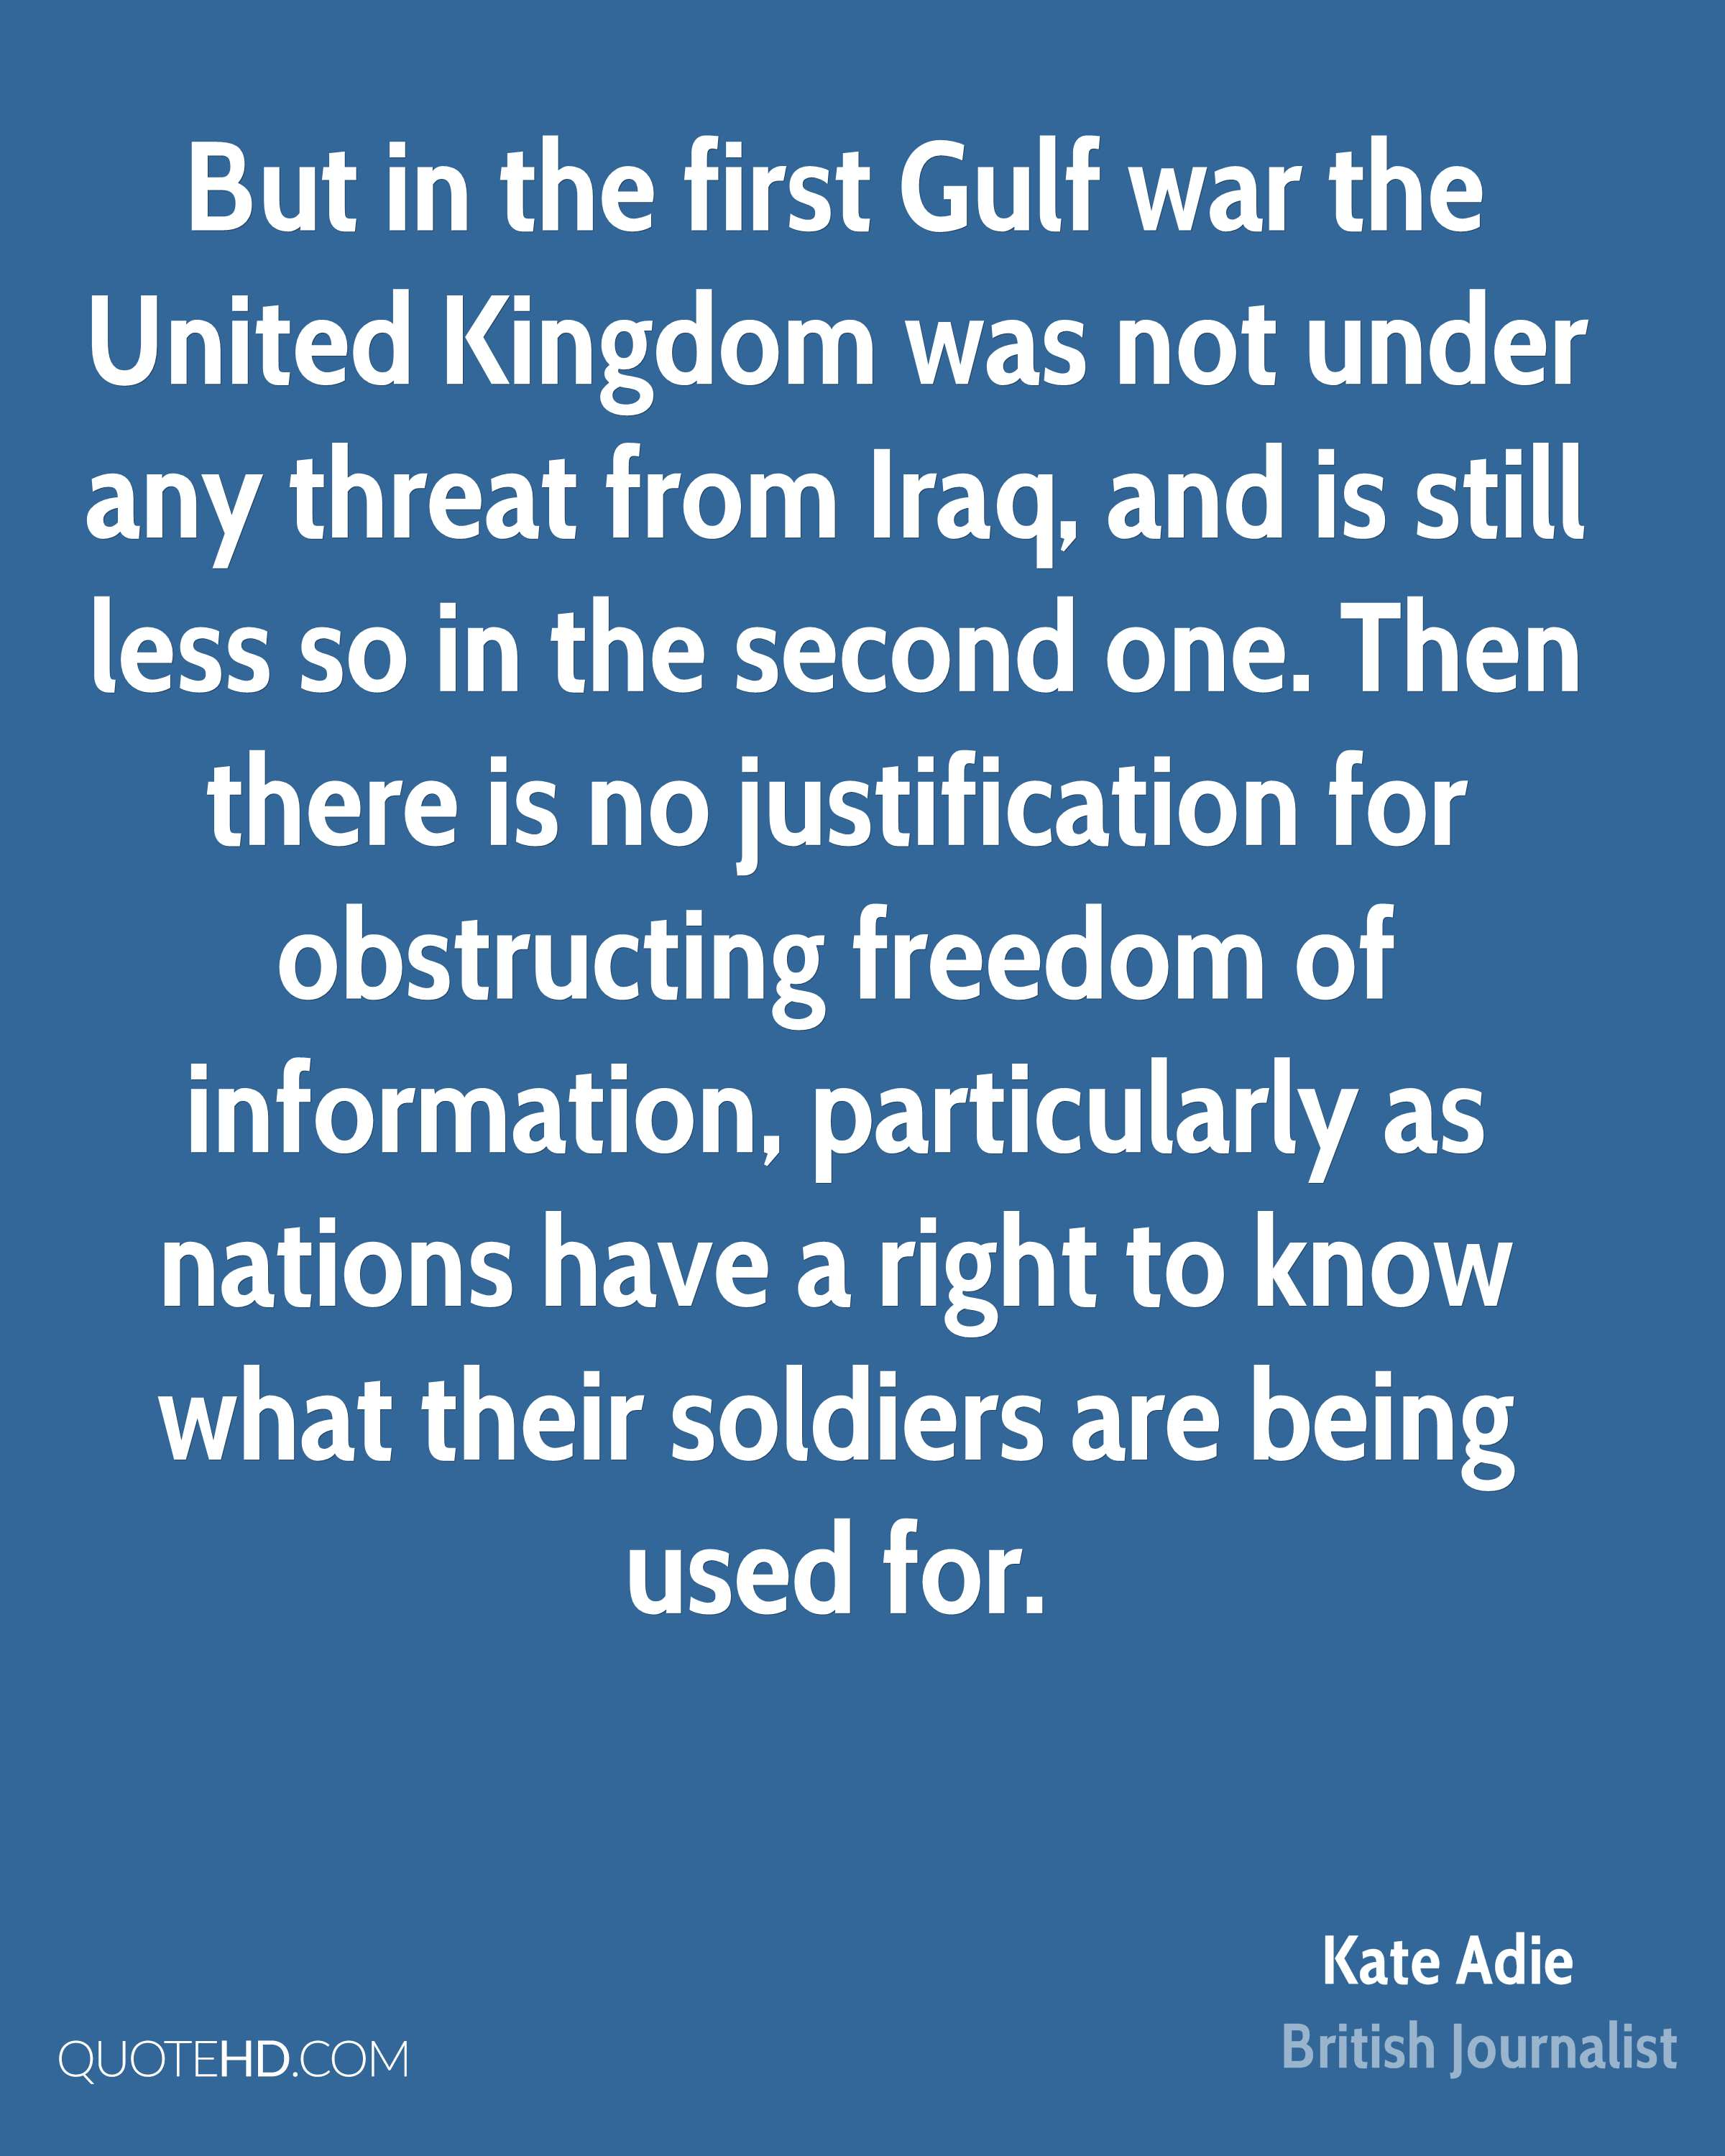 But in the first Gulf war the United Kingdom was not under any threat from Iraq, and is still less so in the second one. Then there is no justification for obstructing freedom of information, particularly as nations have a right to know what their soldiers are being used for.